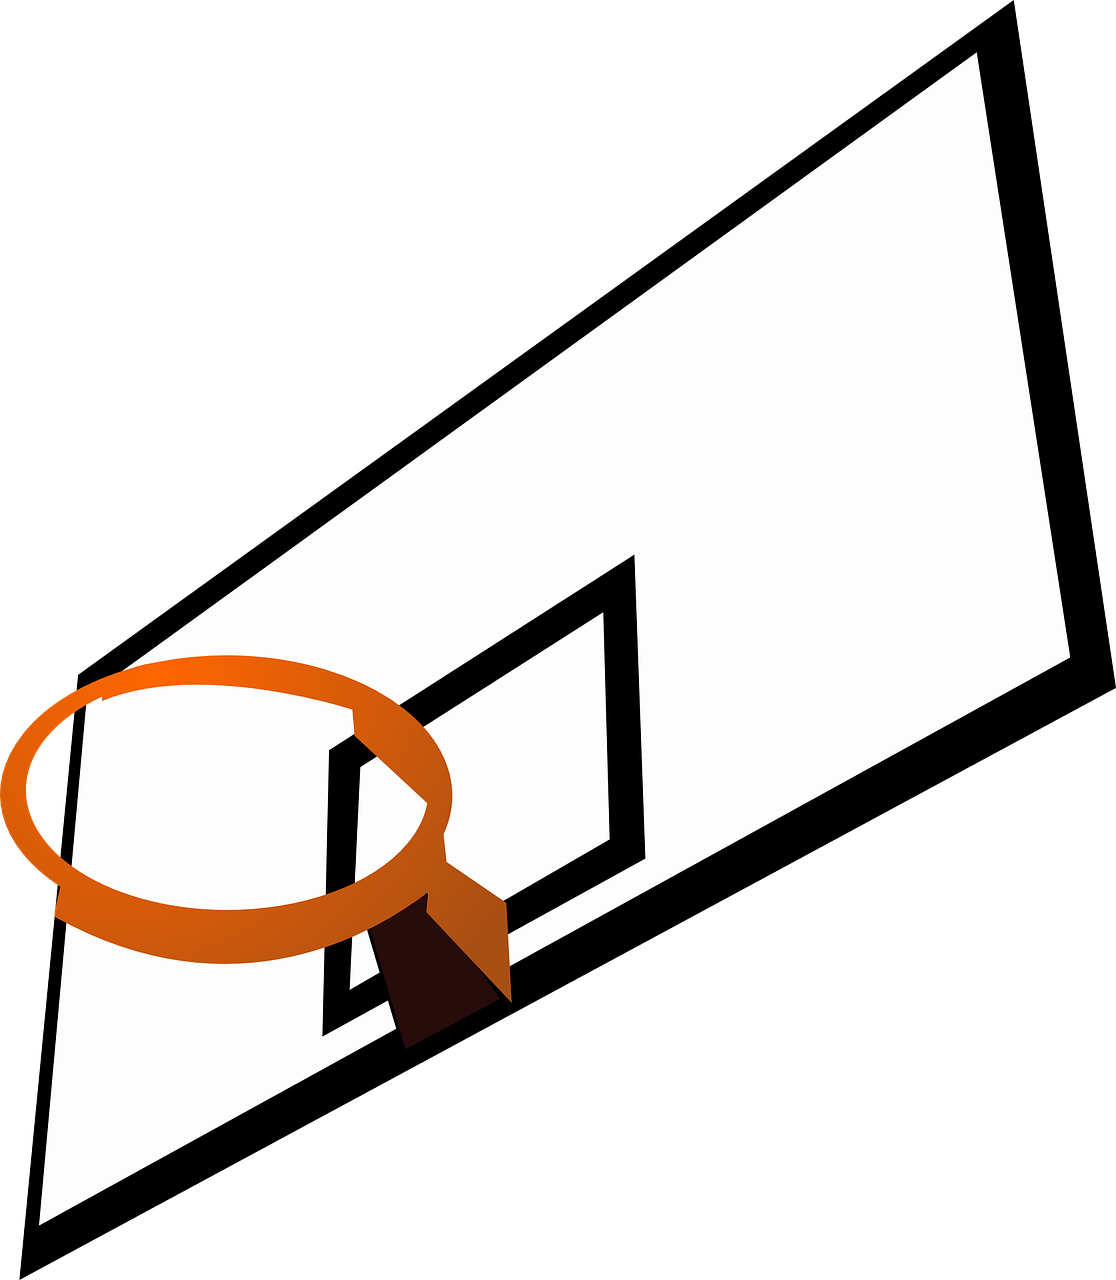 backboard rim basketball free picture